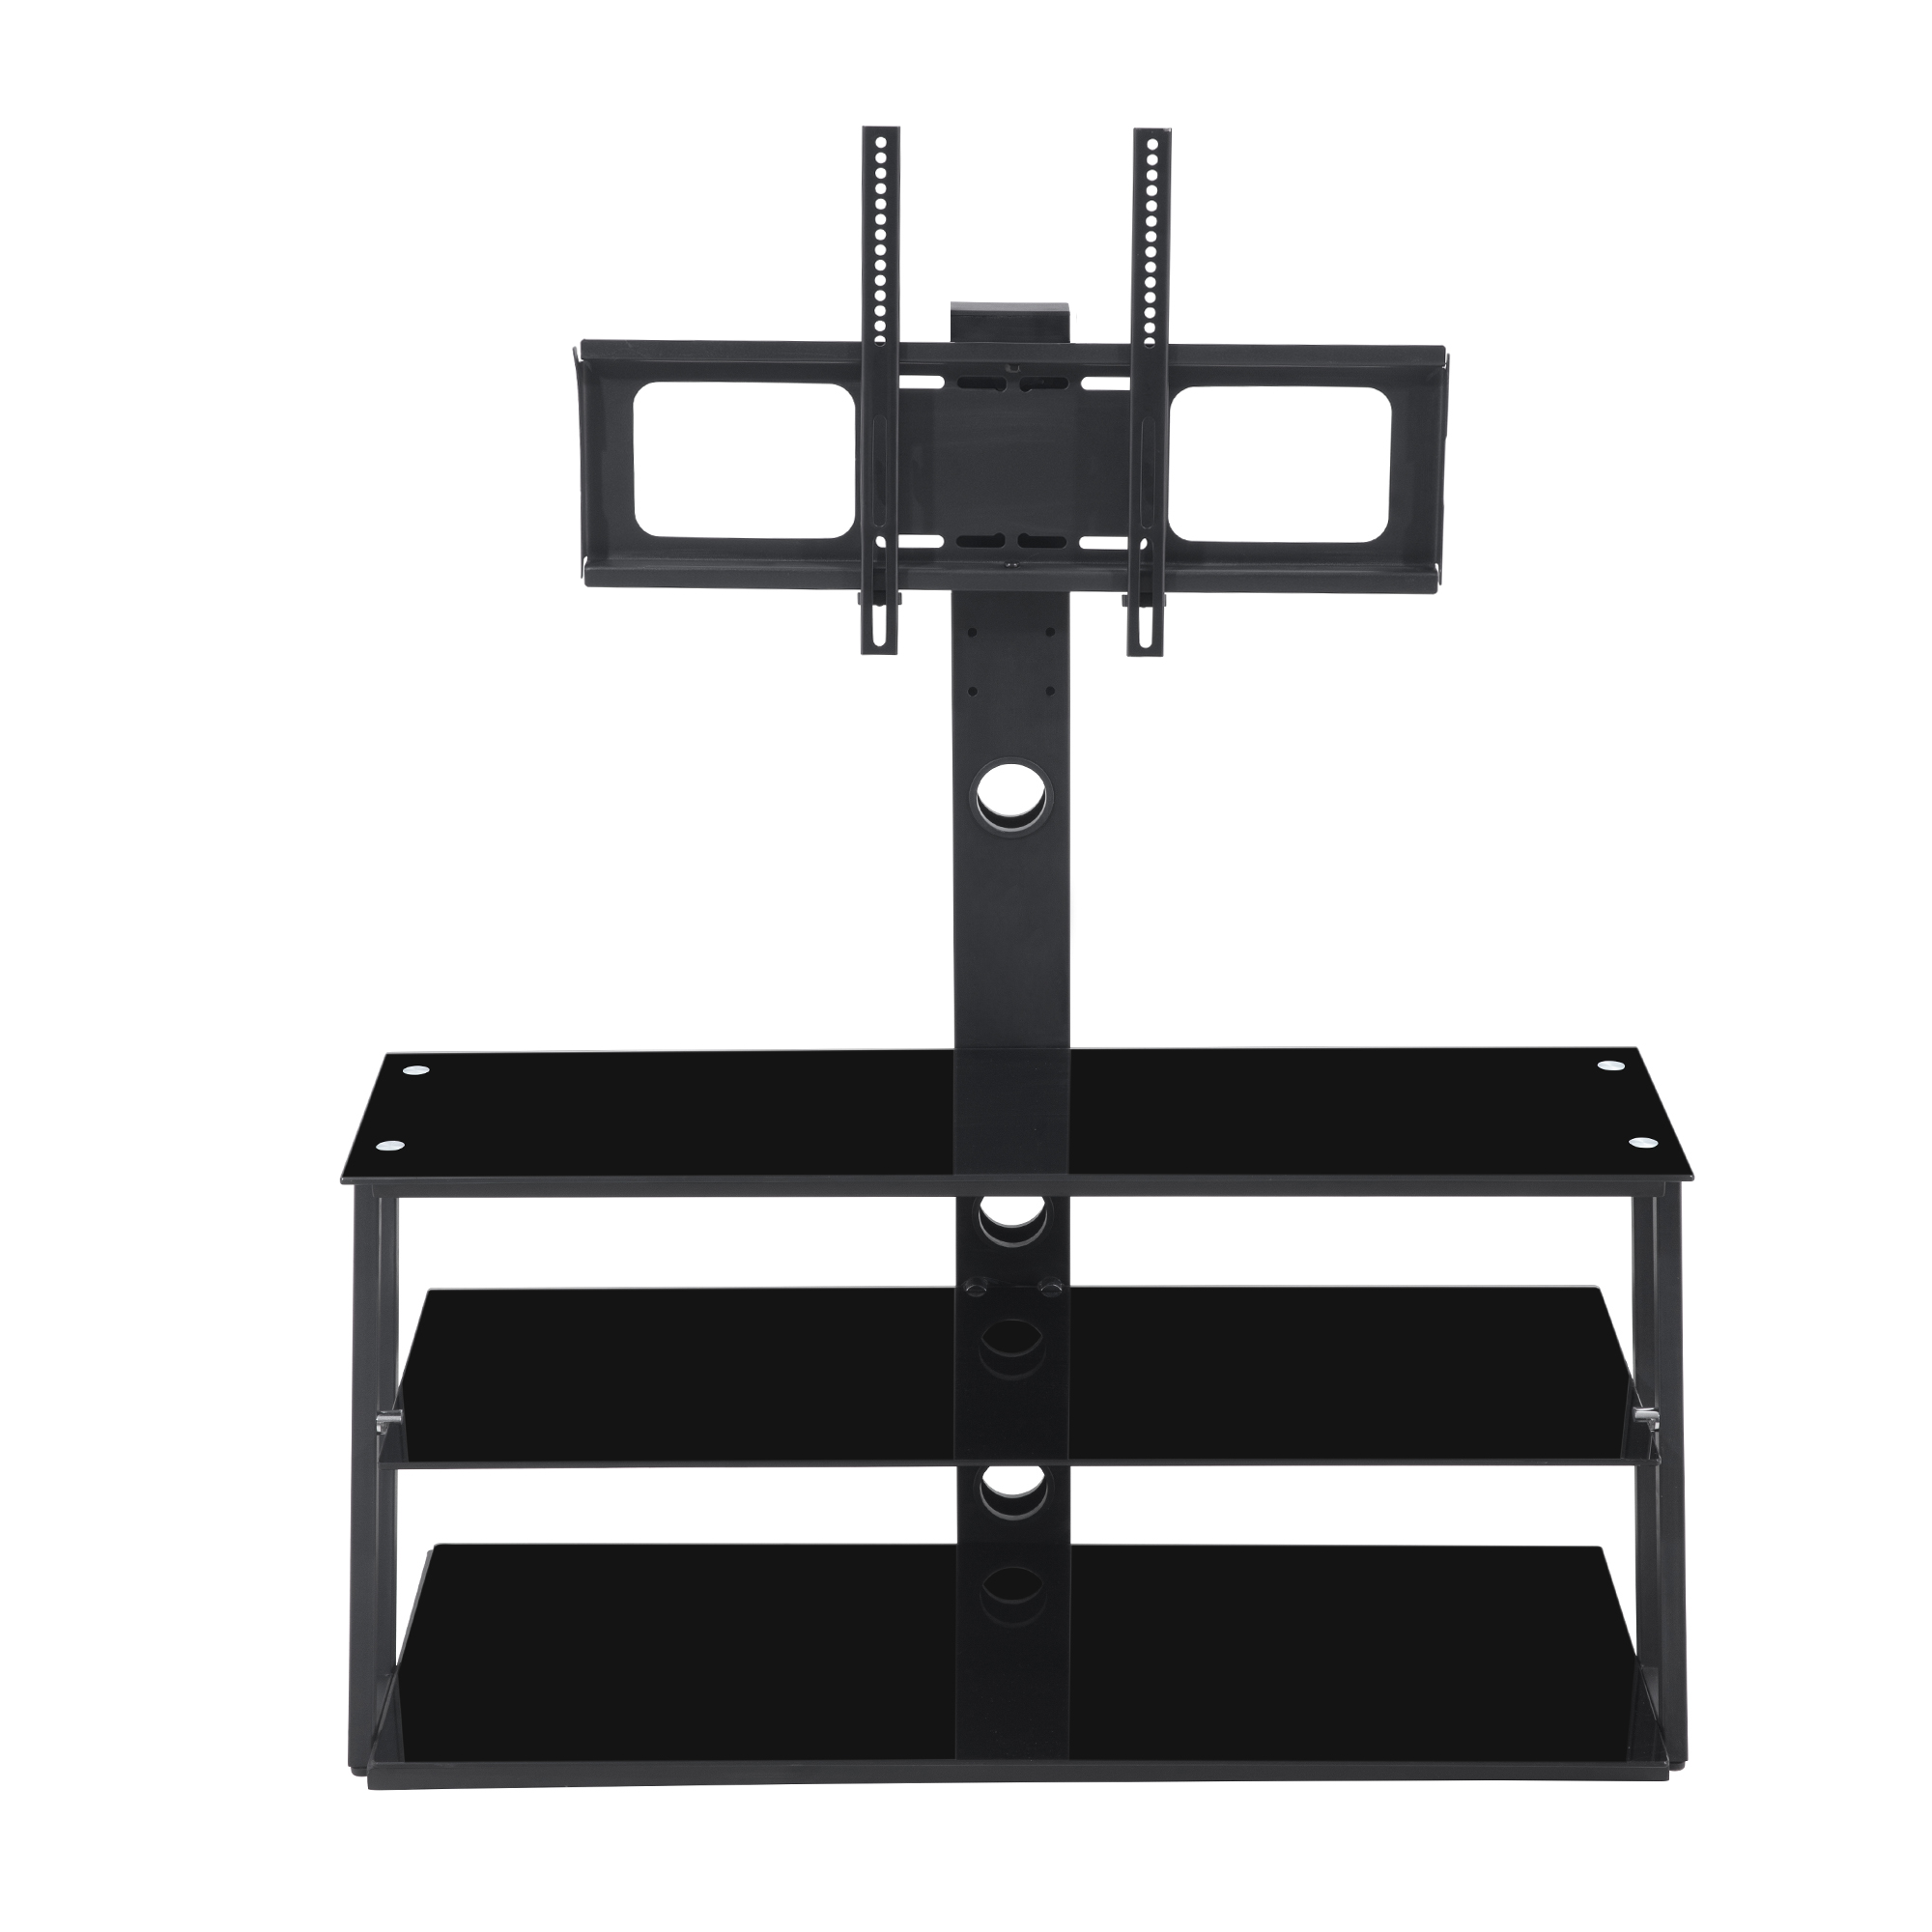 Good quality Universal Led/LCD TV Table General Used Modern Home Furniture Living Room New Classic Glass Table TV Stand